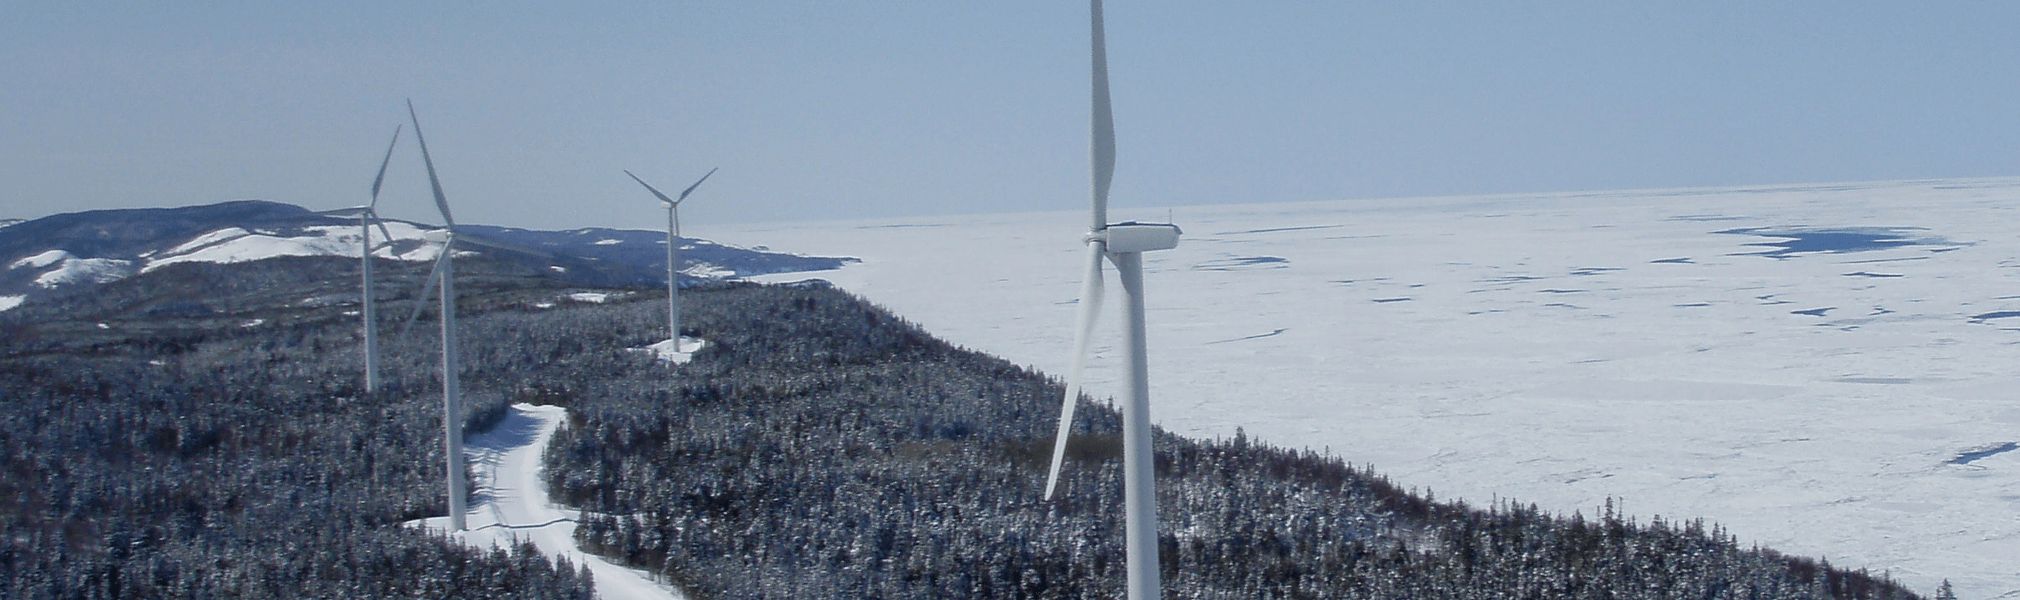 Anse-à-Valleau wind farm